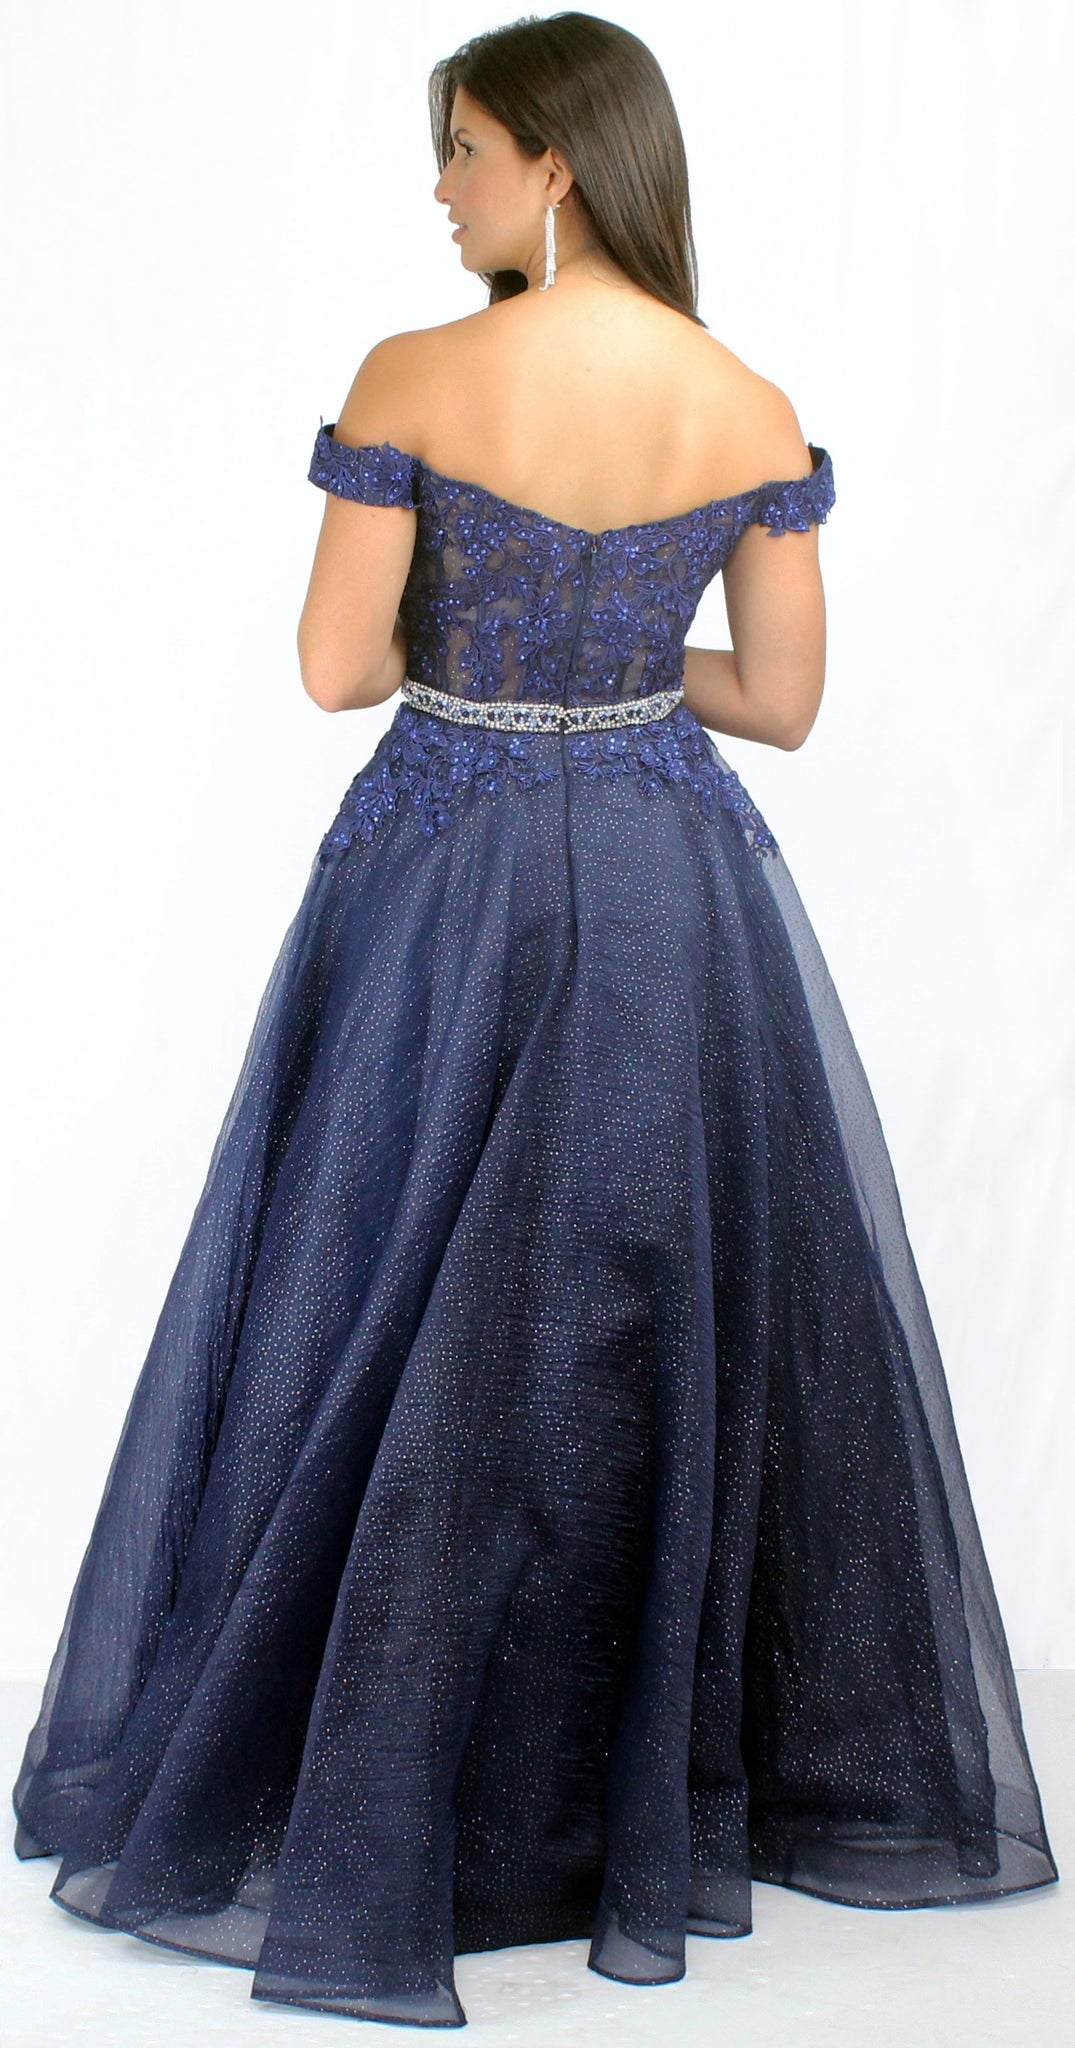 Queen of the Evening Navy Ball Gown